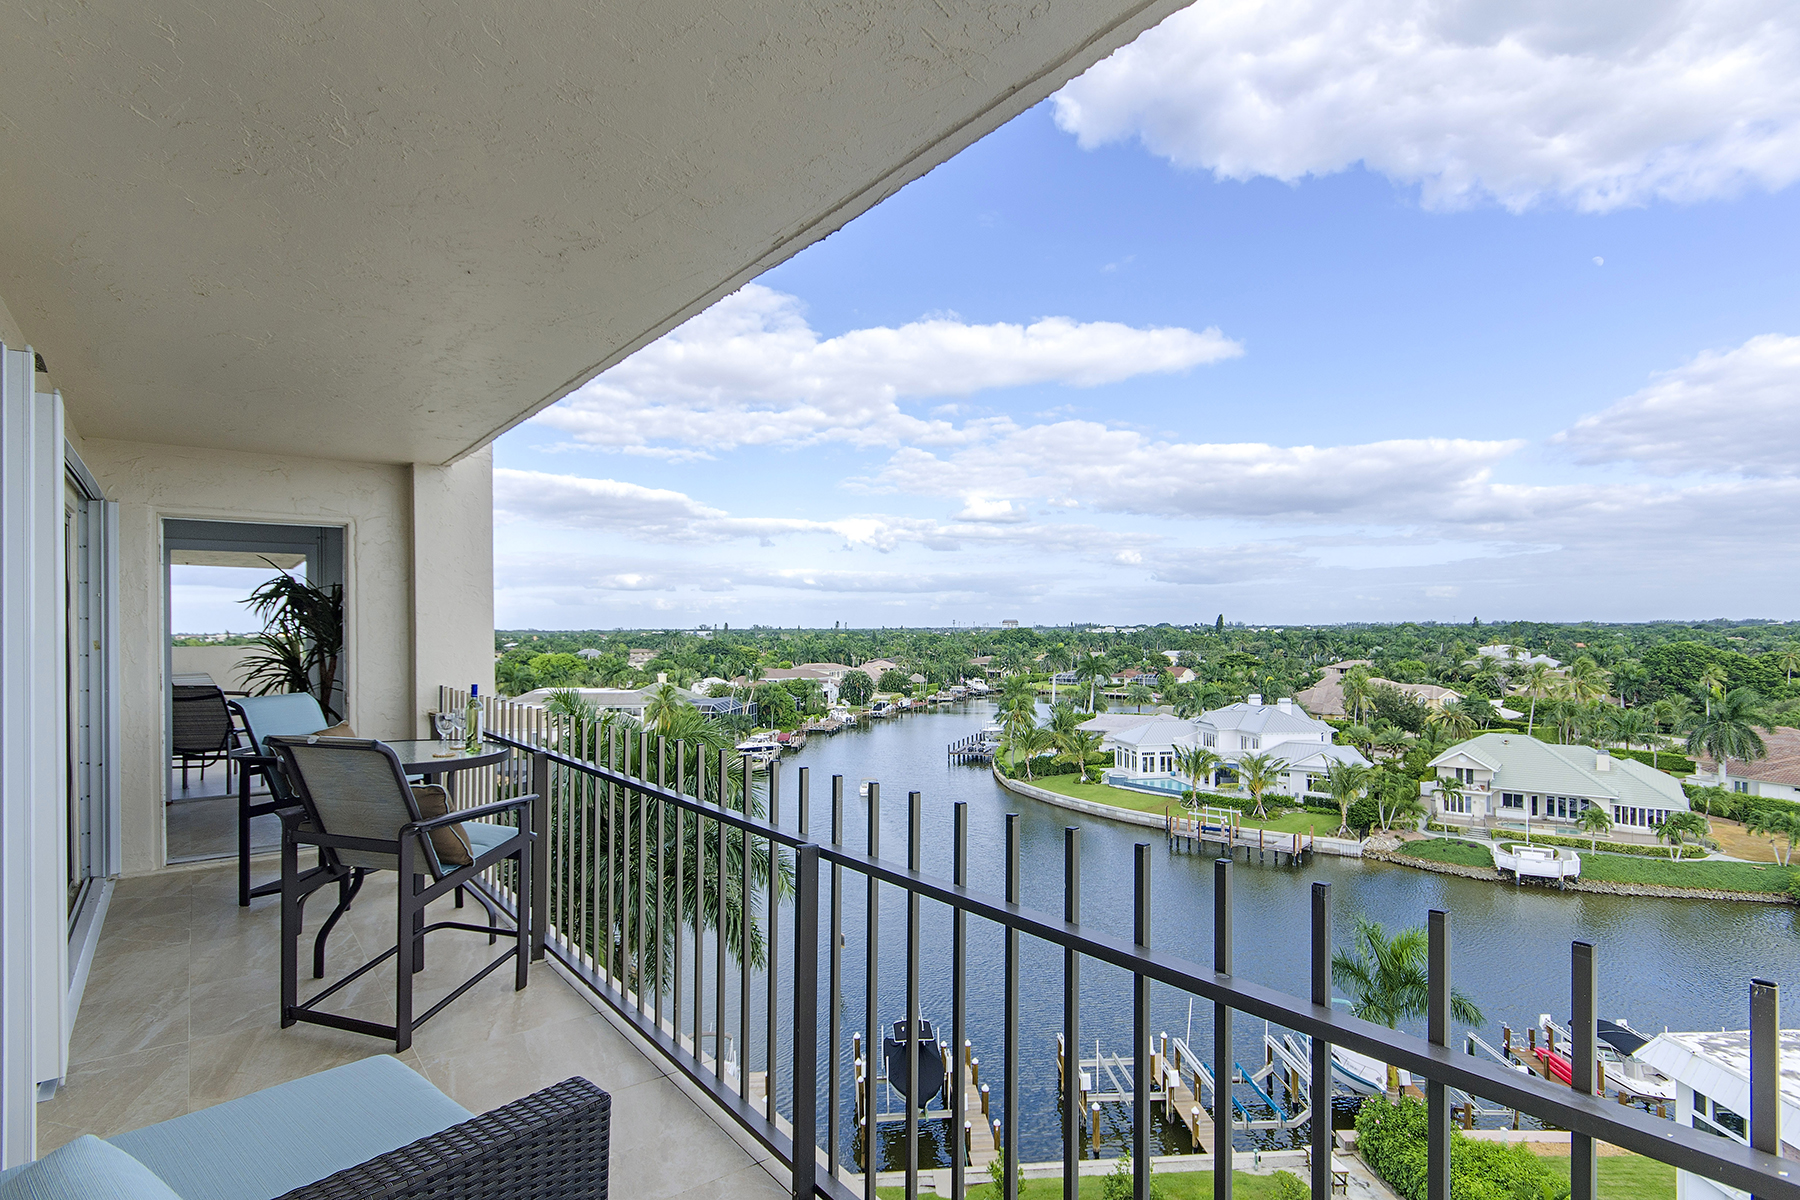 Condominio por un Venta en MOORINGS - KINGSPORT 2150 Gulf Shore Blvd N PS Naples, Florida, 34102 Estados Unidos